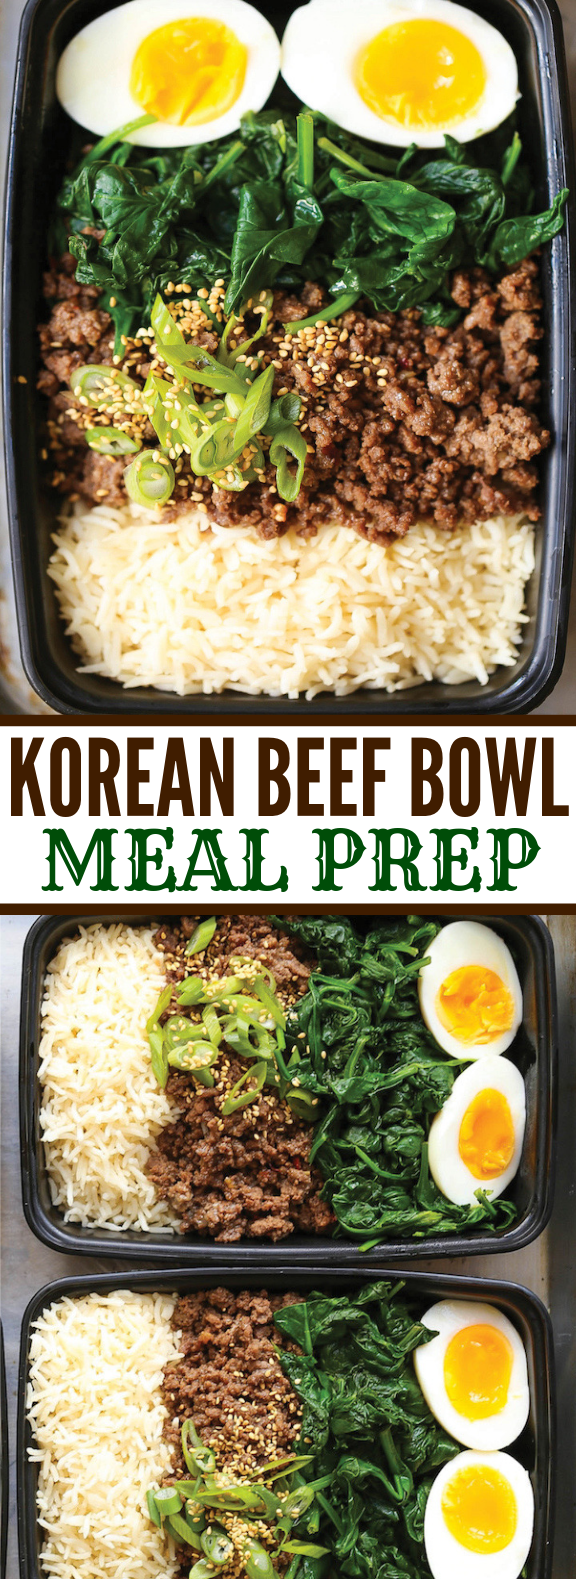 KOREAN BEEF BOWL MEAL PREP #lunch #bbq